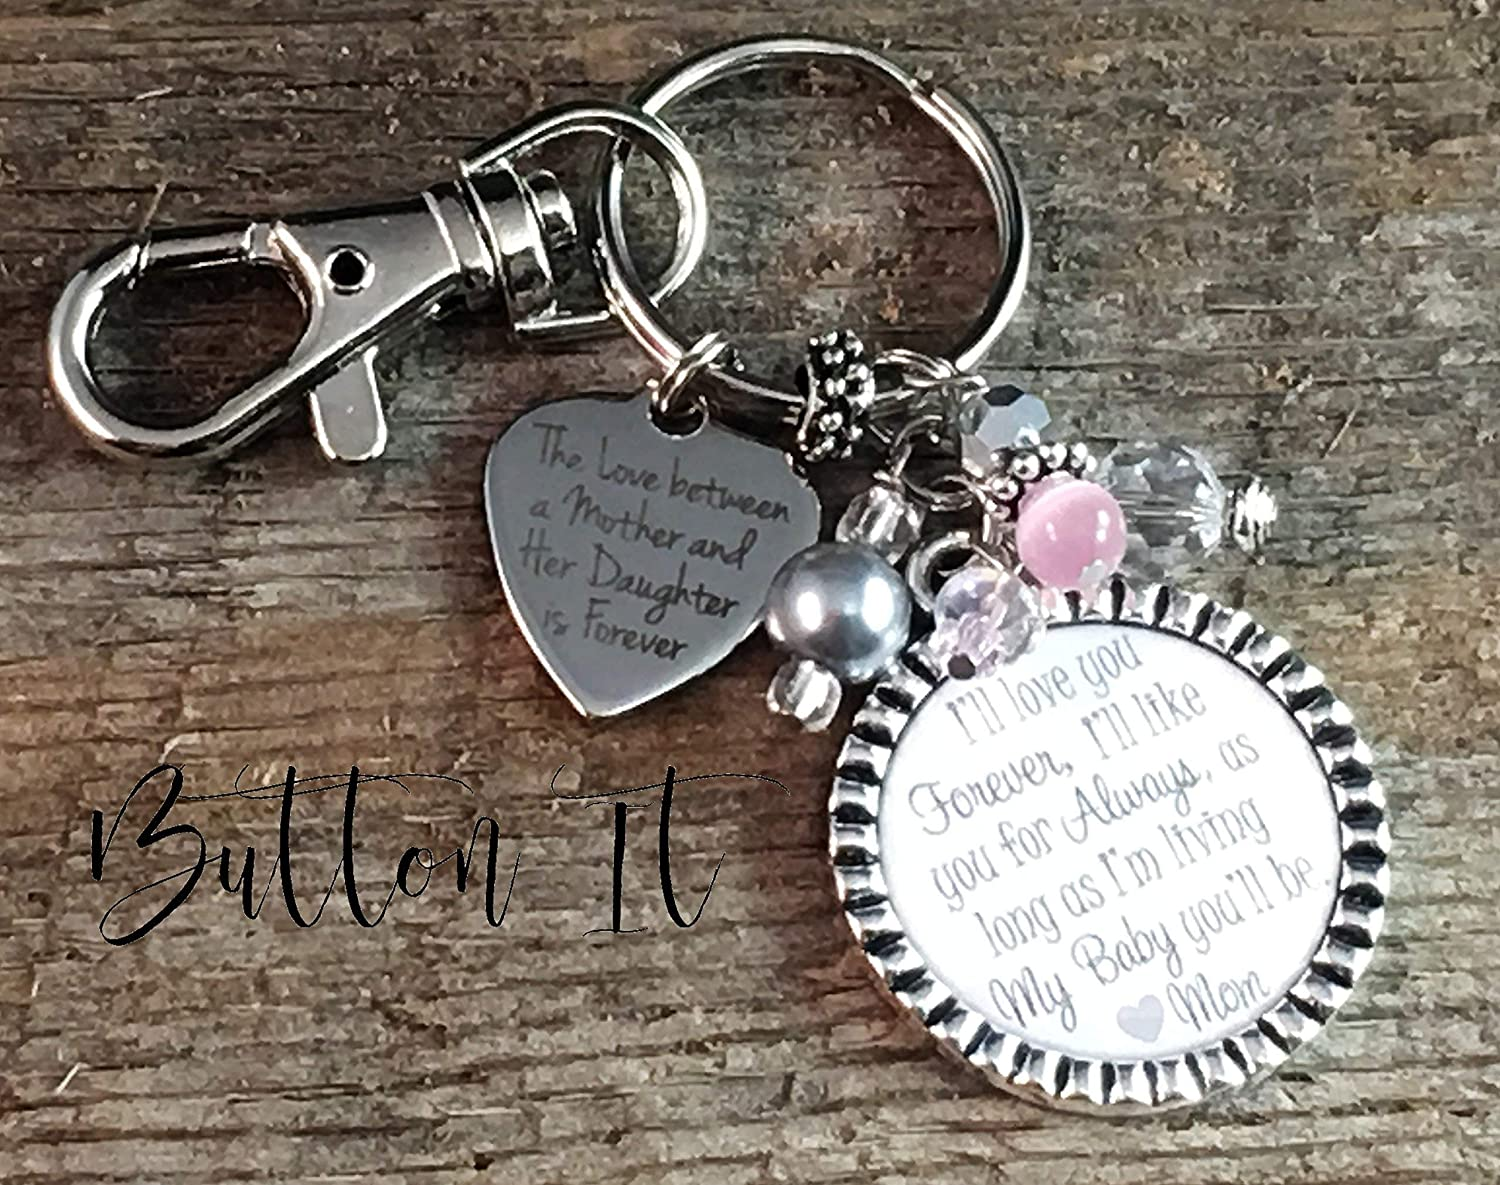 bride gift mother daughter jewelry bridal bouquet charm bride wedding gift Ill love you forever like you for always daughter gift bride bridal shower